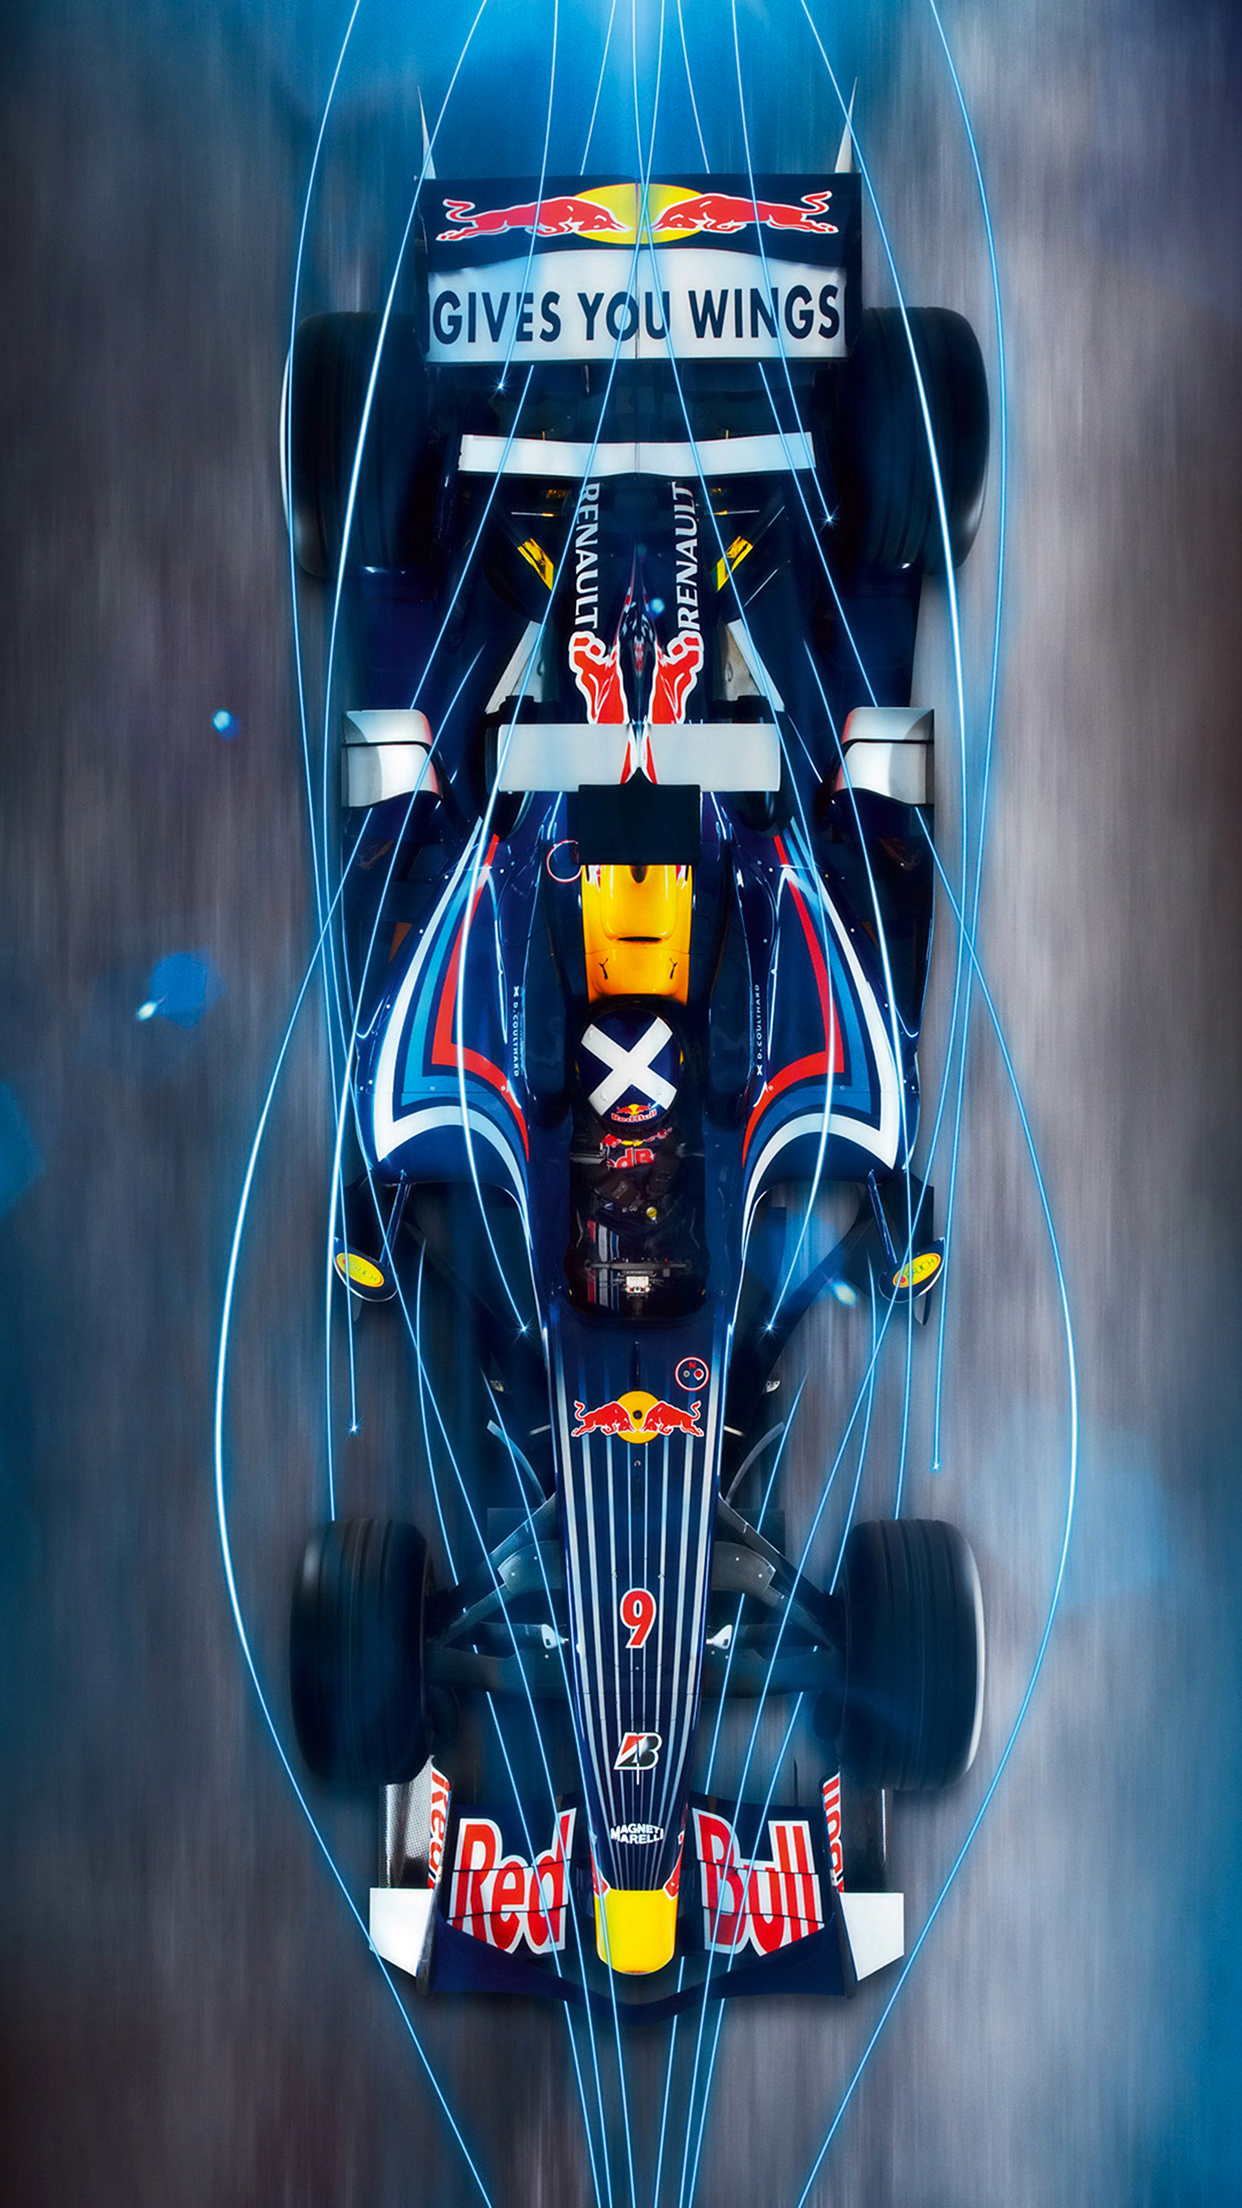 Moving Wallpapers For Iphone 6s Formula 1 Red Bull Wallpaper For Iphone X 8 7 6 Free